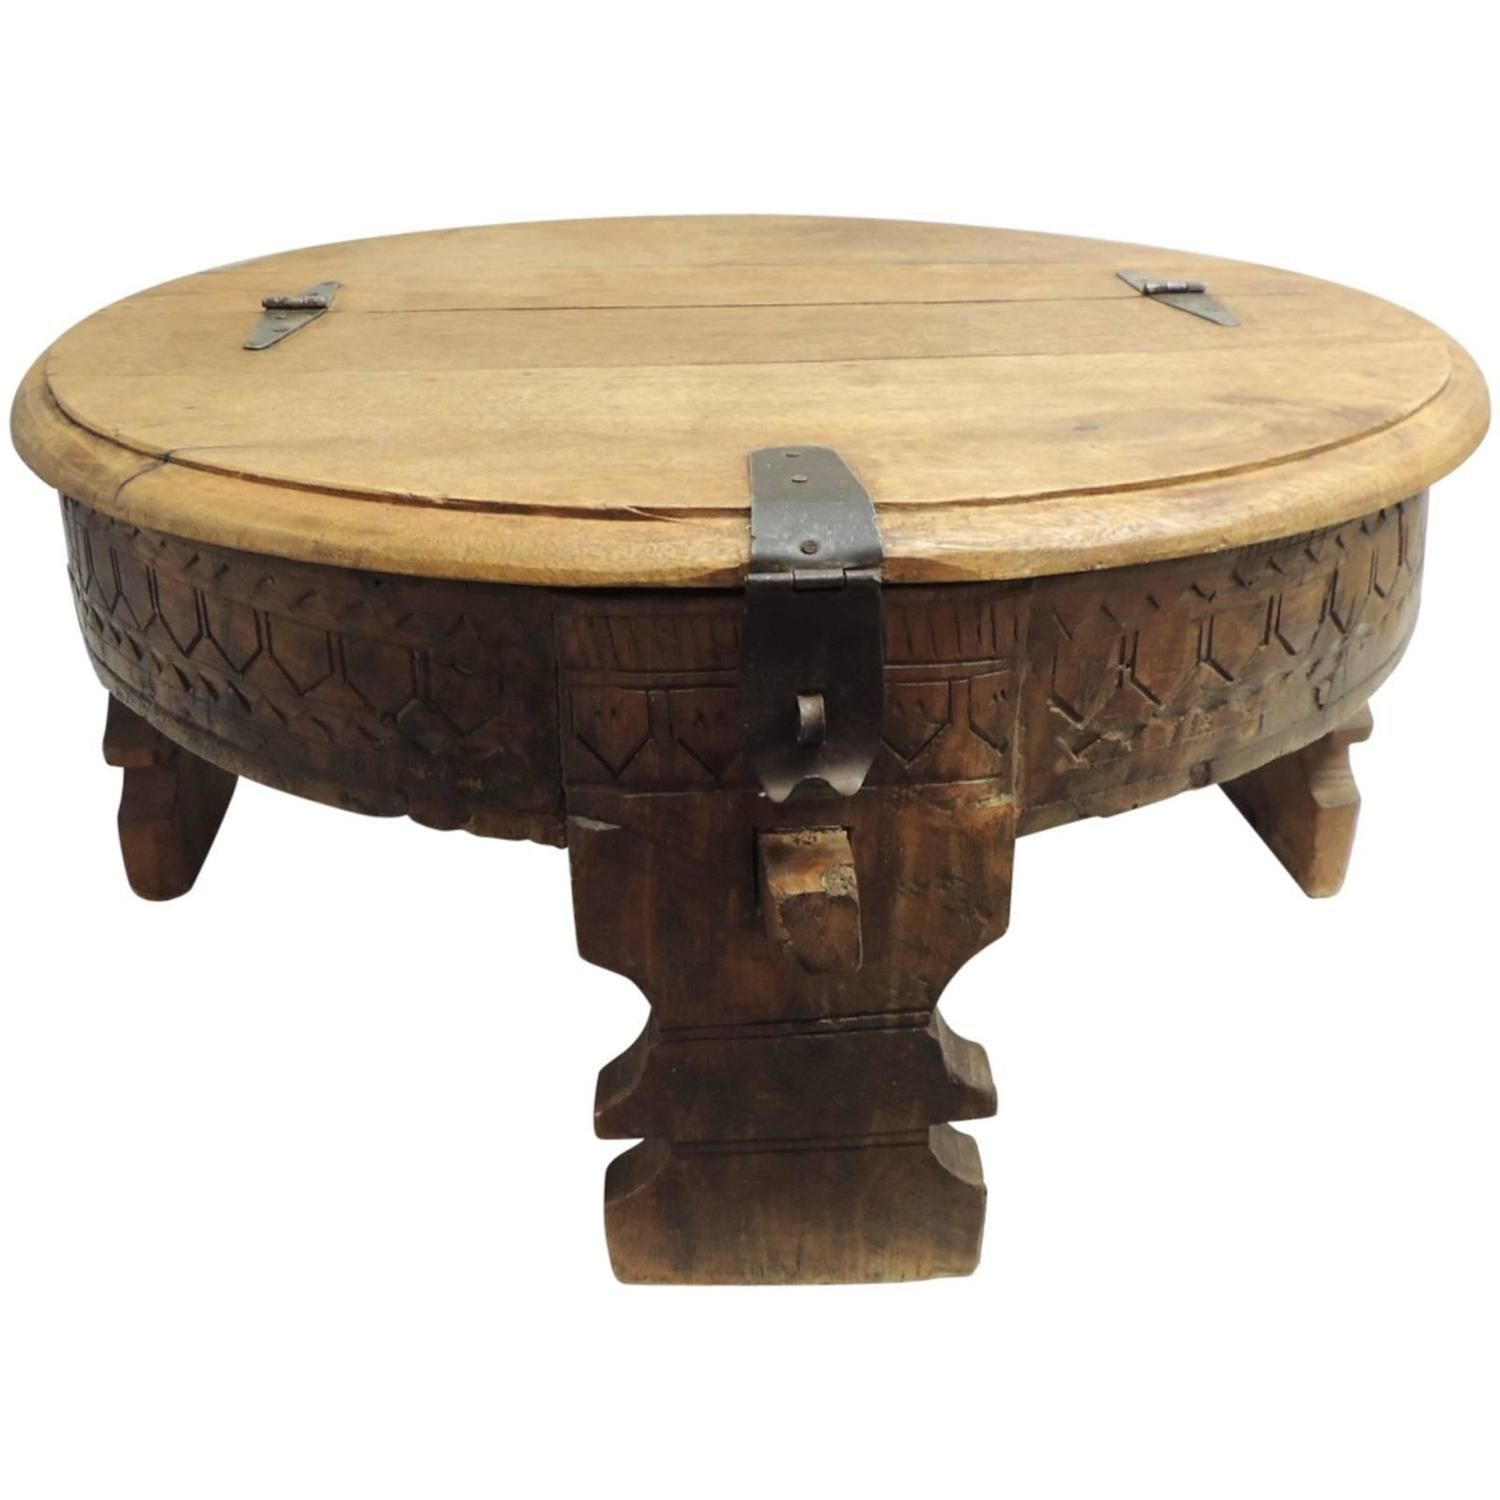 Moroccan Carved Round Coffee Table Coffee Table Round Wood Coffee Table Round Gold Coffee Table [ 1500 x 1500 Pixel ]